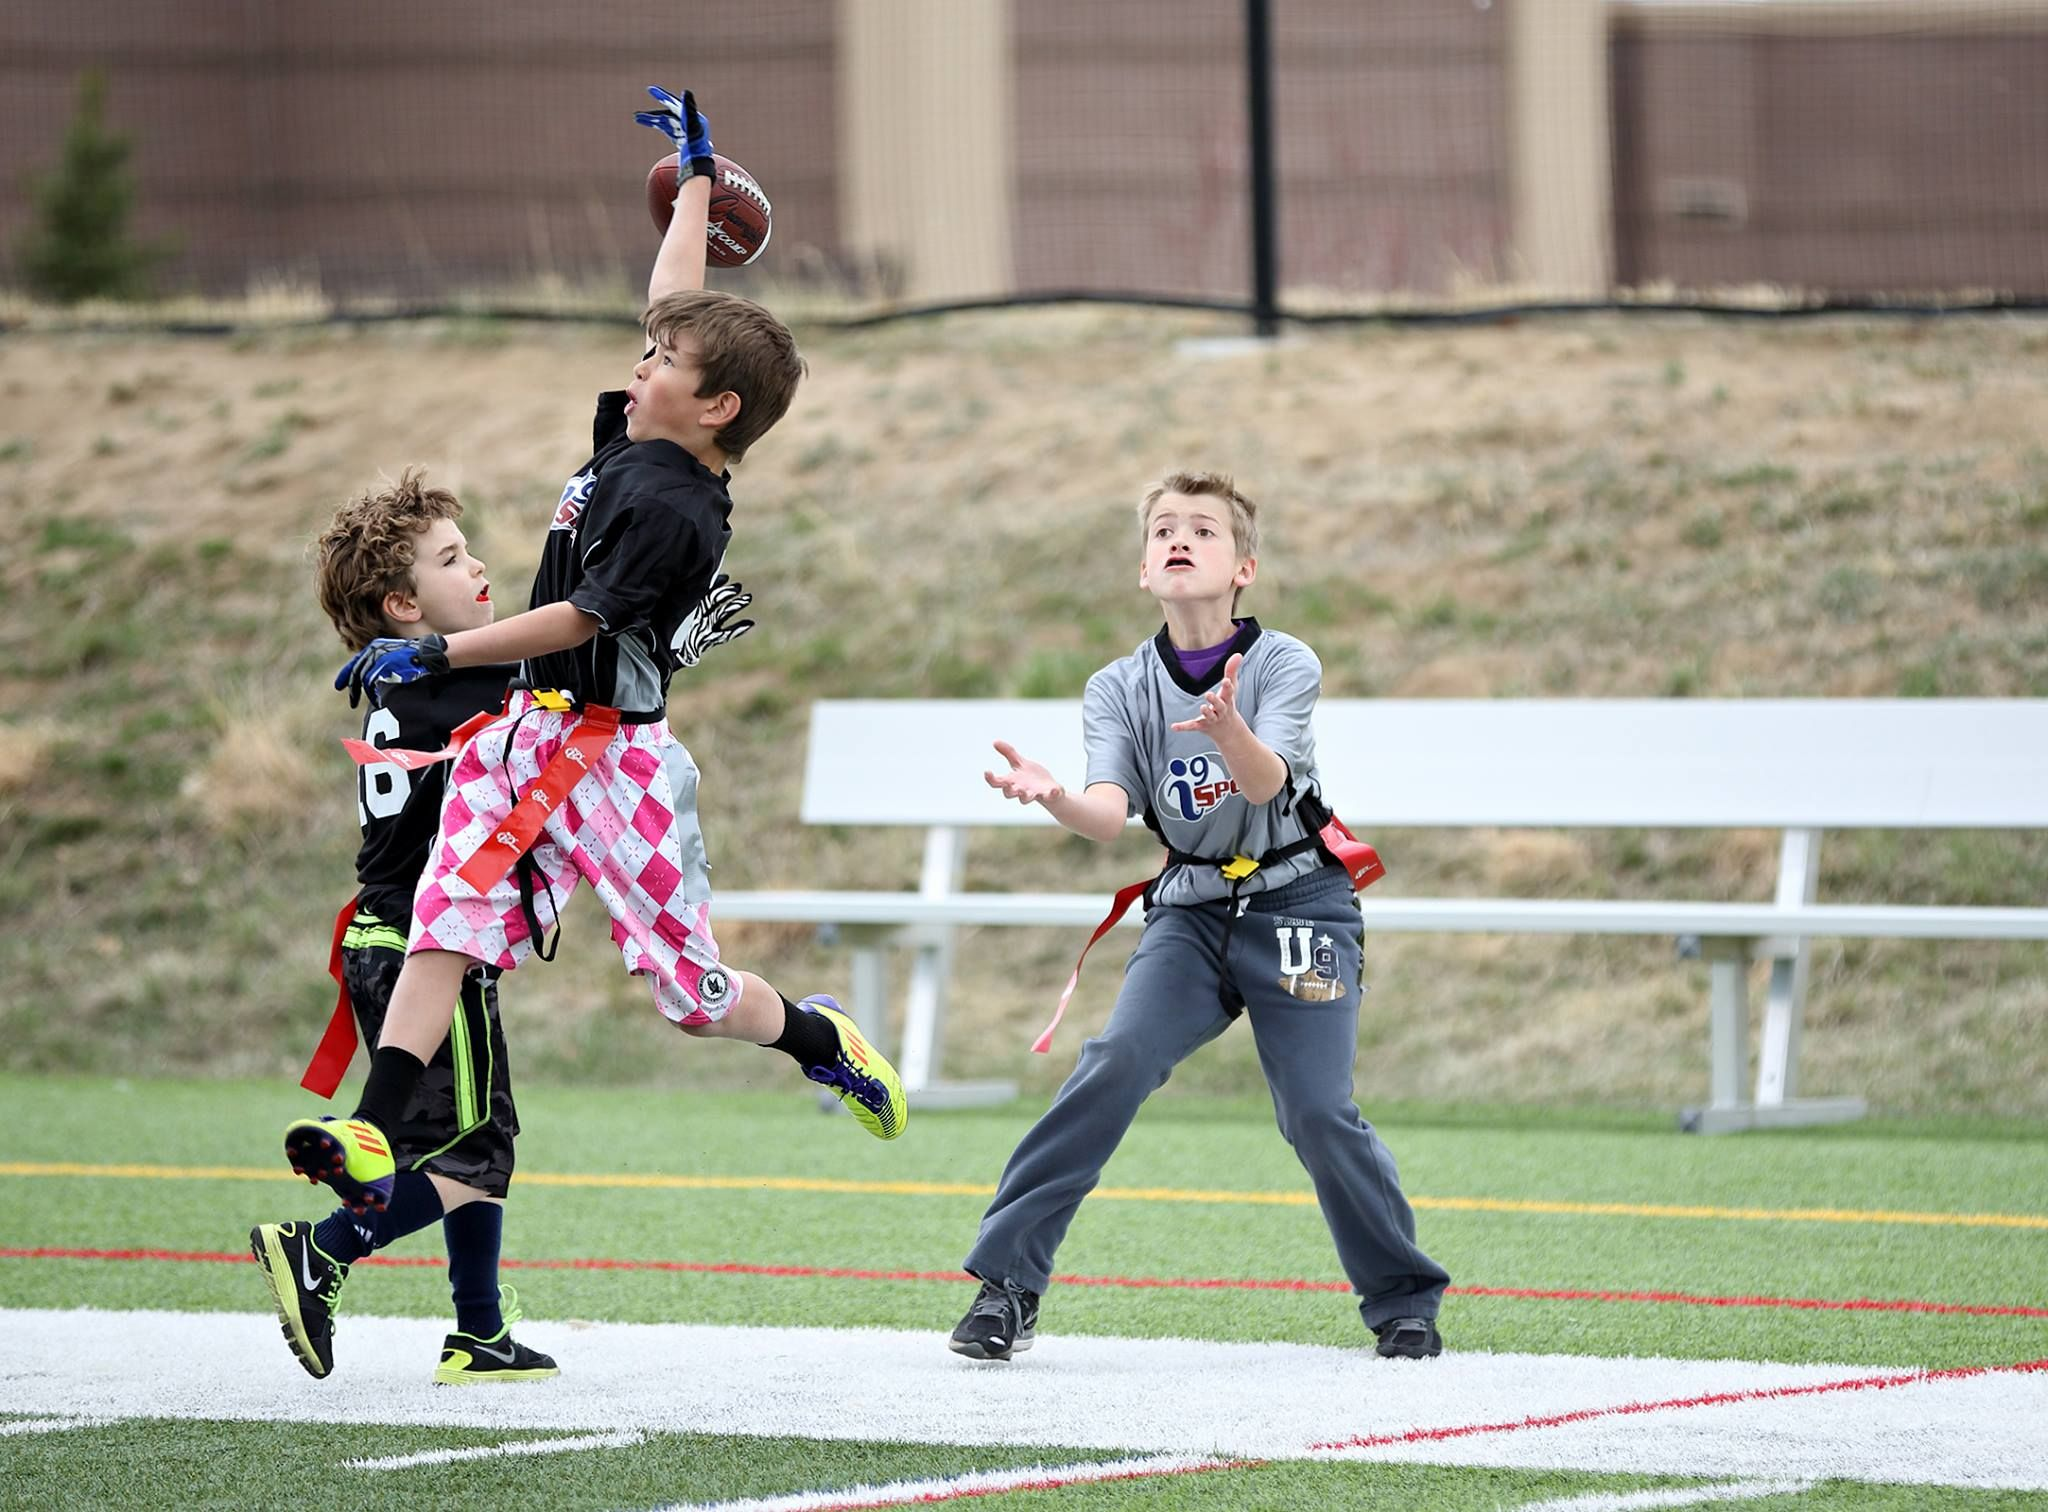 Flagfootball flag football flag football league youth